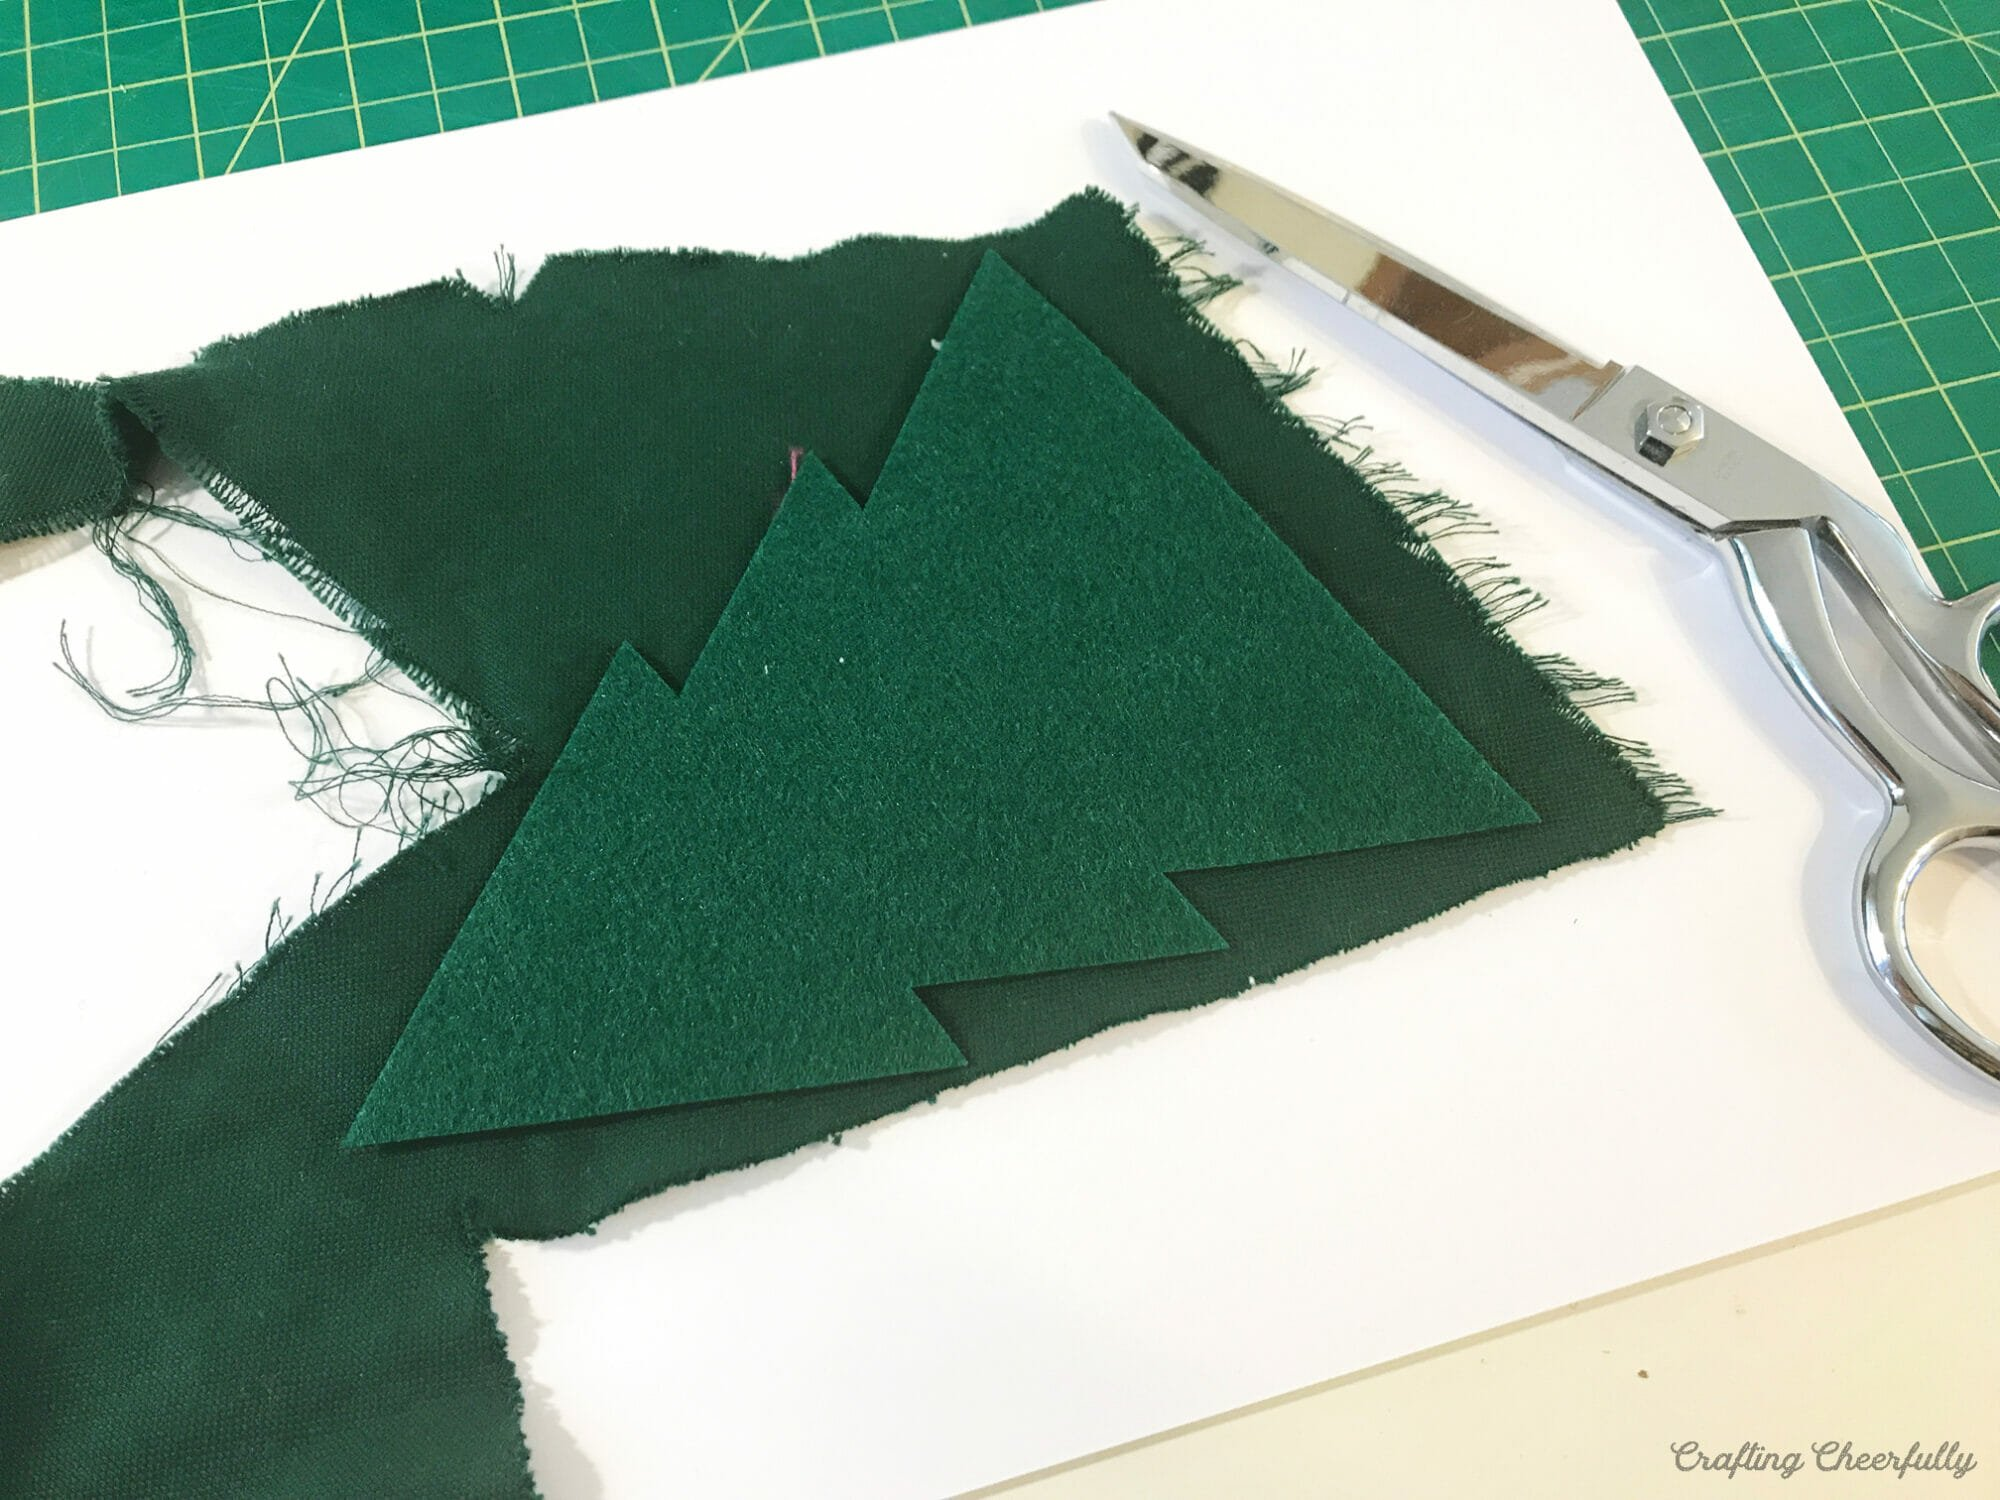 Felt Christmas tree is laid out on a scrap of green wood as a templte.